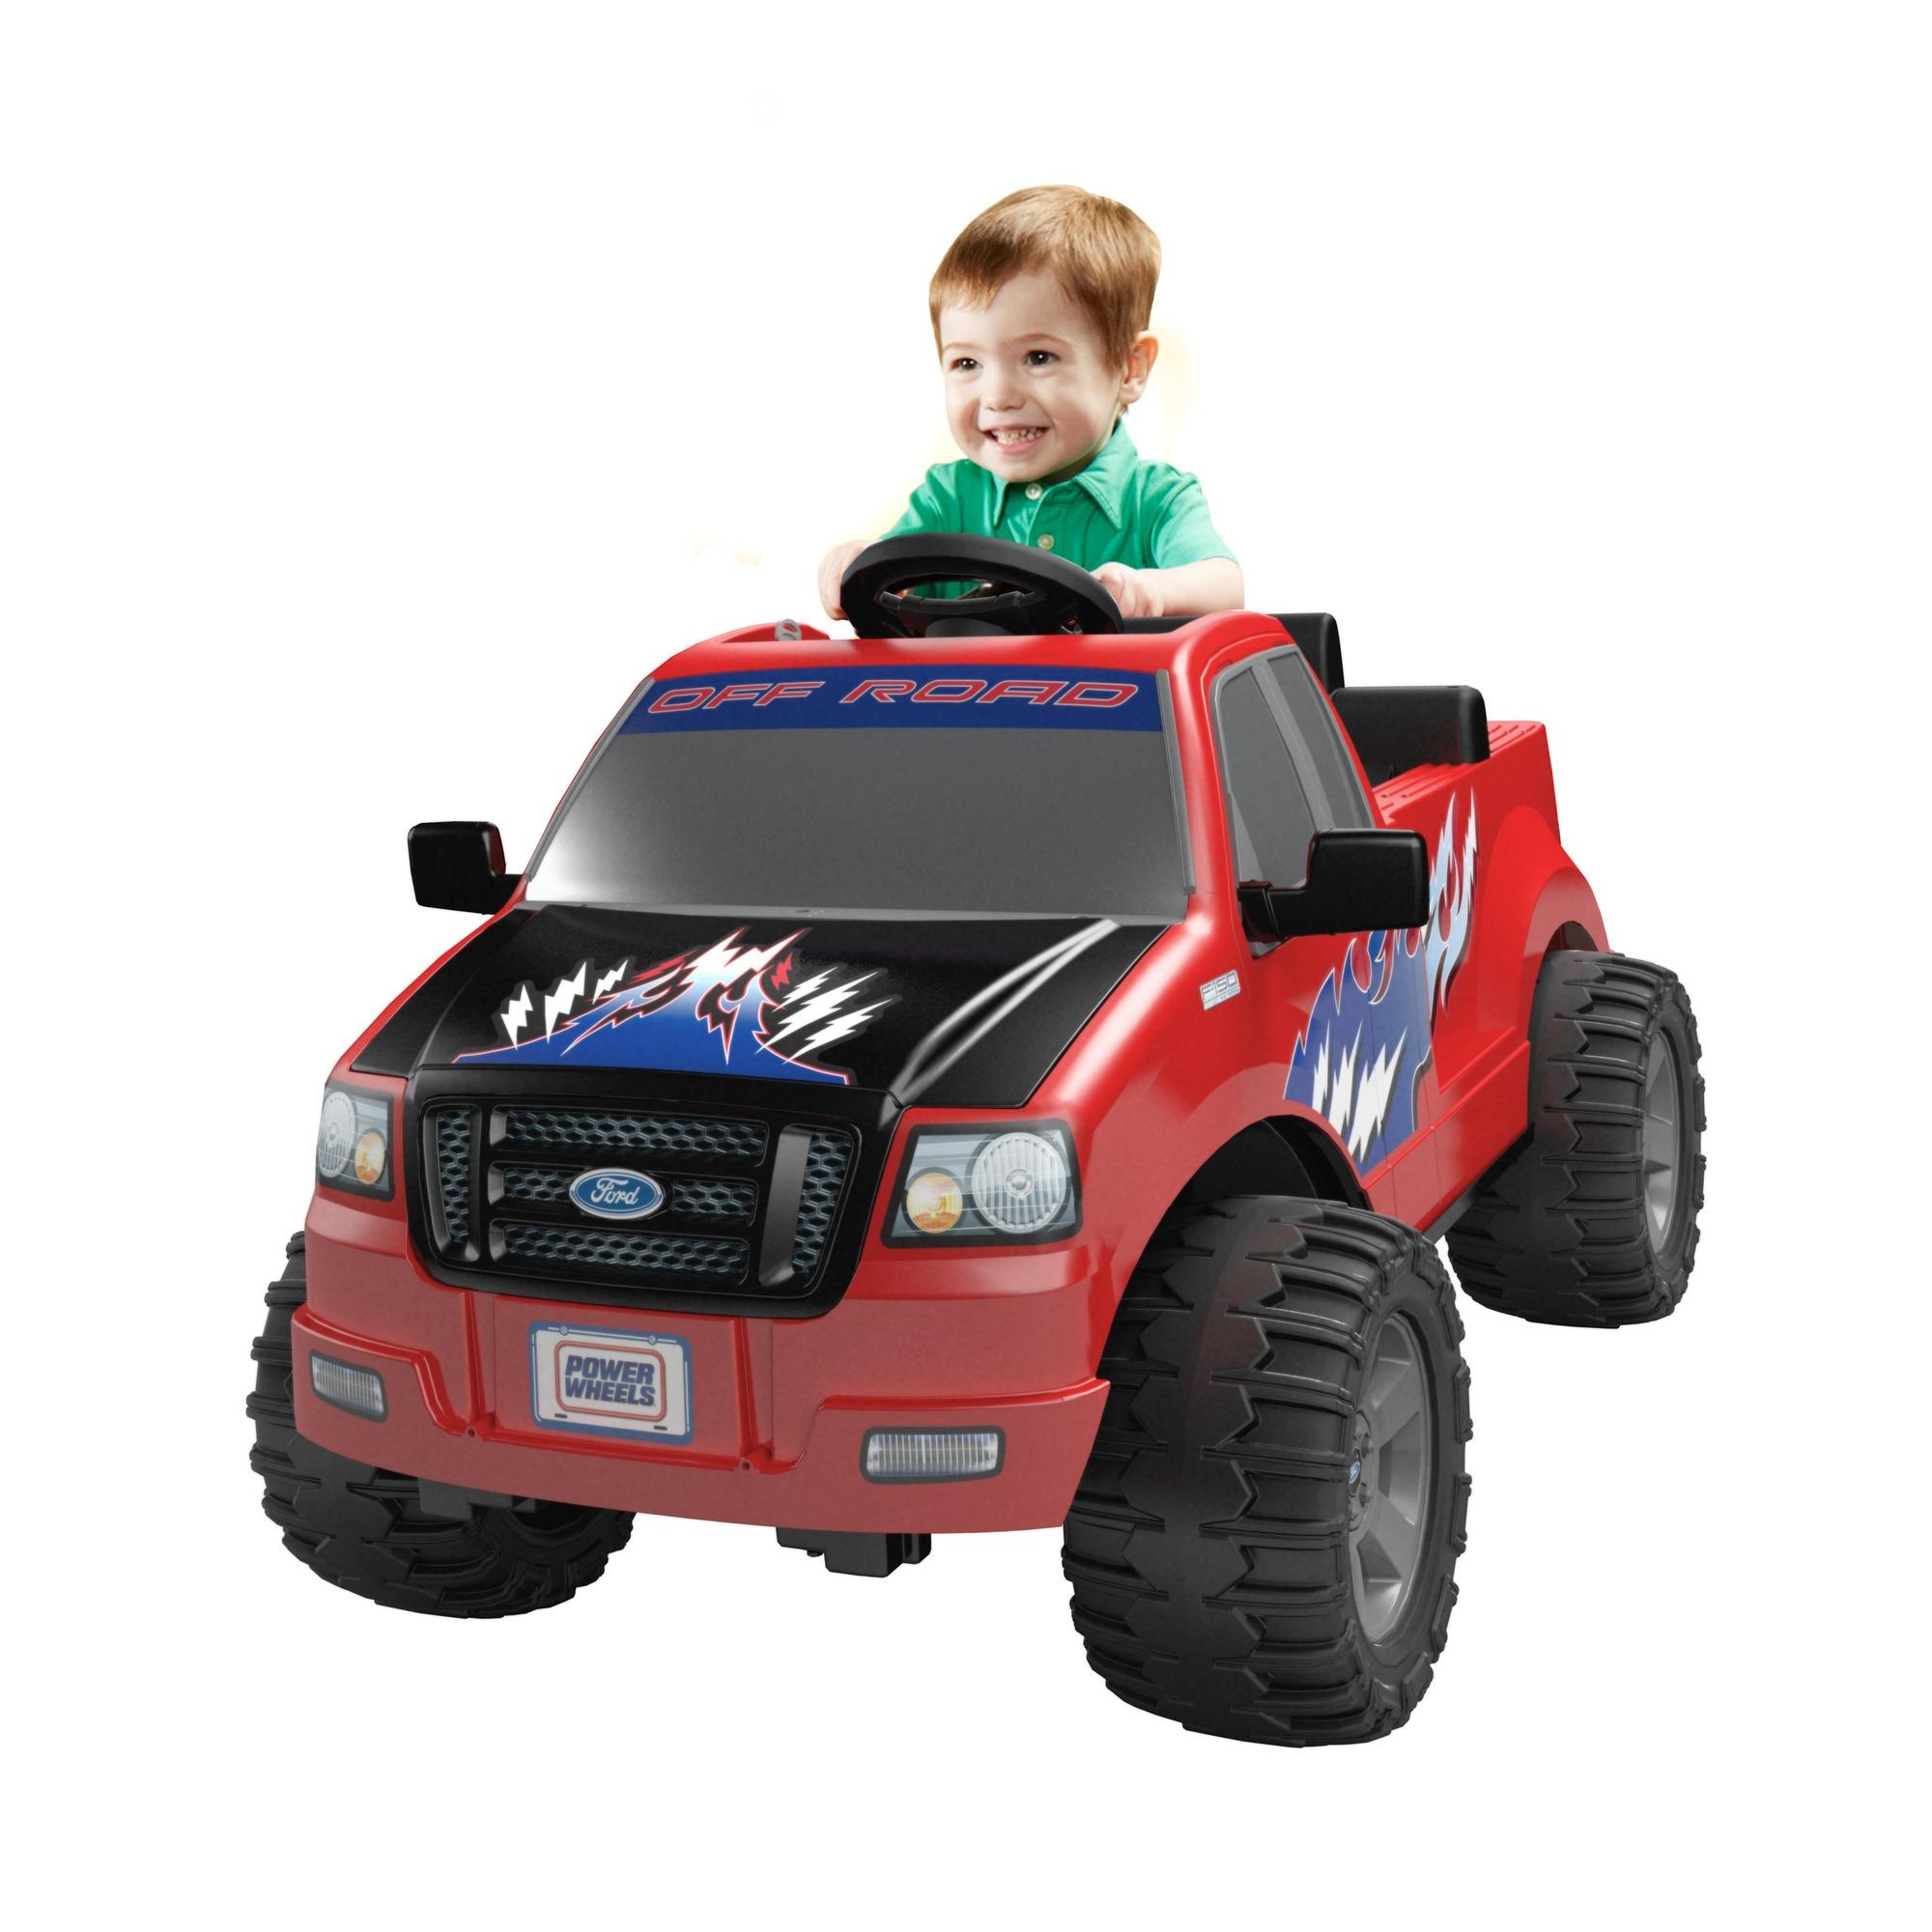 Power Wheels Ford Lil' F-150 Battery-Operated Ride-On by FISHER PRICE